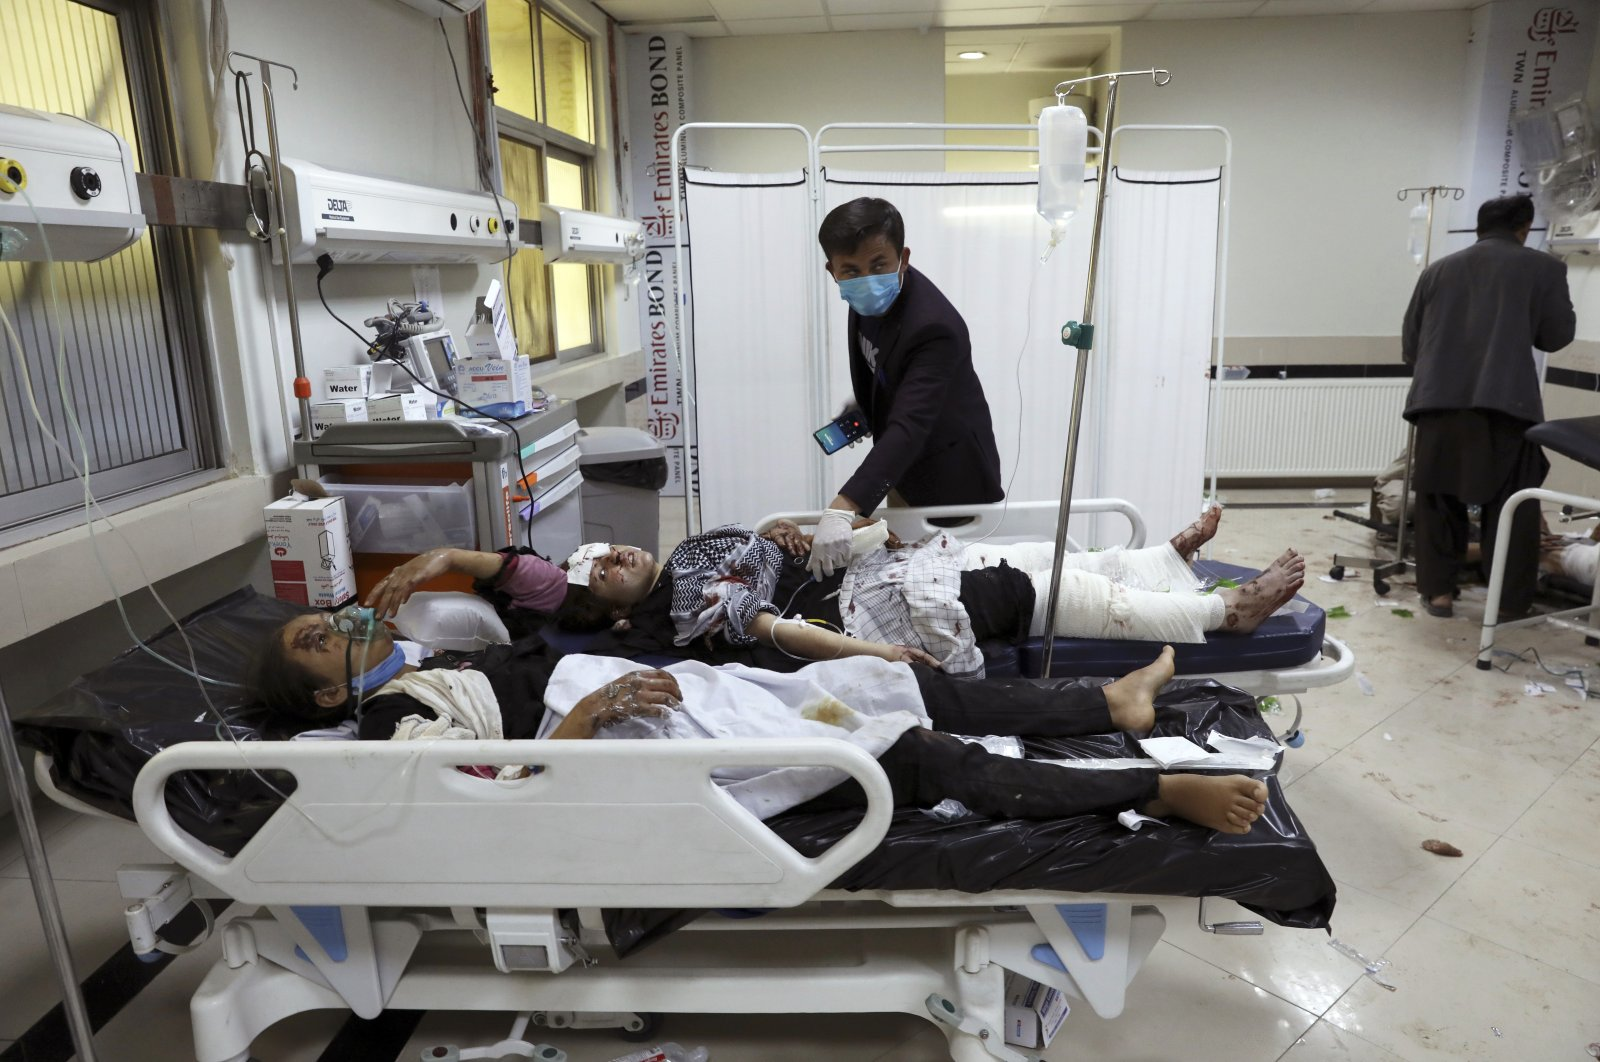 Afghan school students are treated at a hospital after a bomb explosion near a school in western Kabul, Afghanistan, May 8, 2021. (AP Photo)